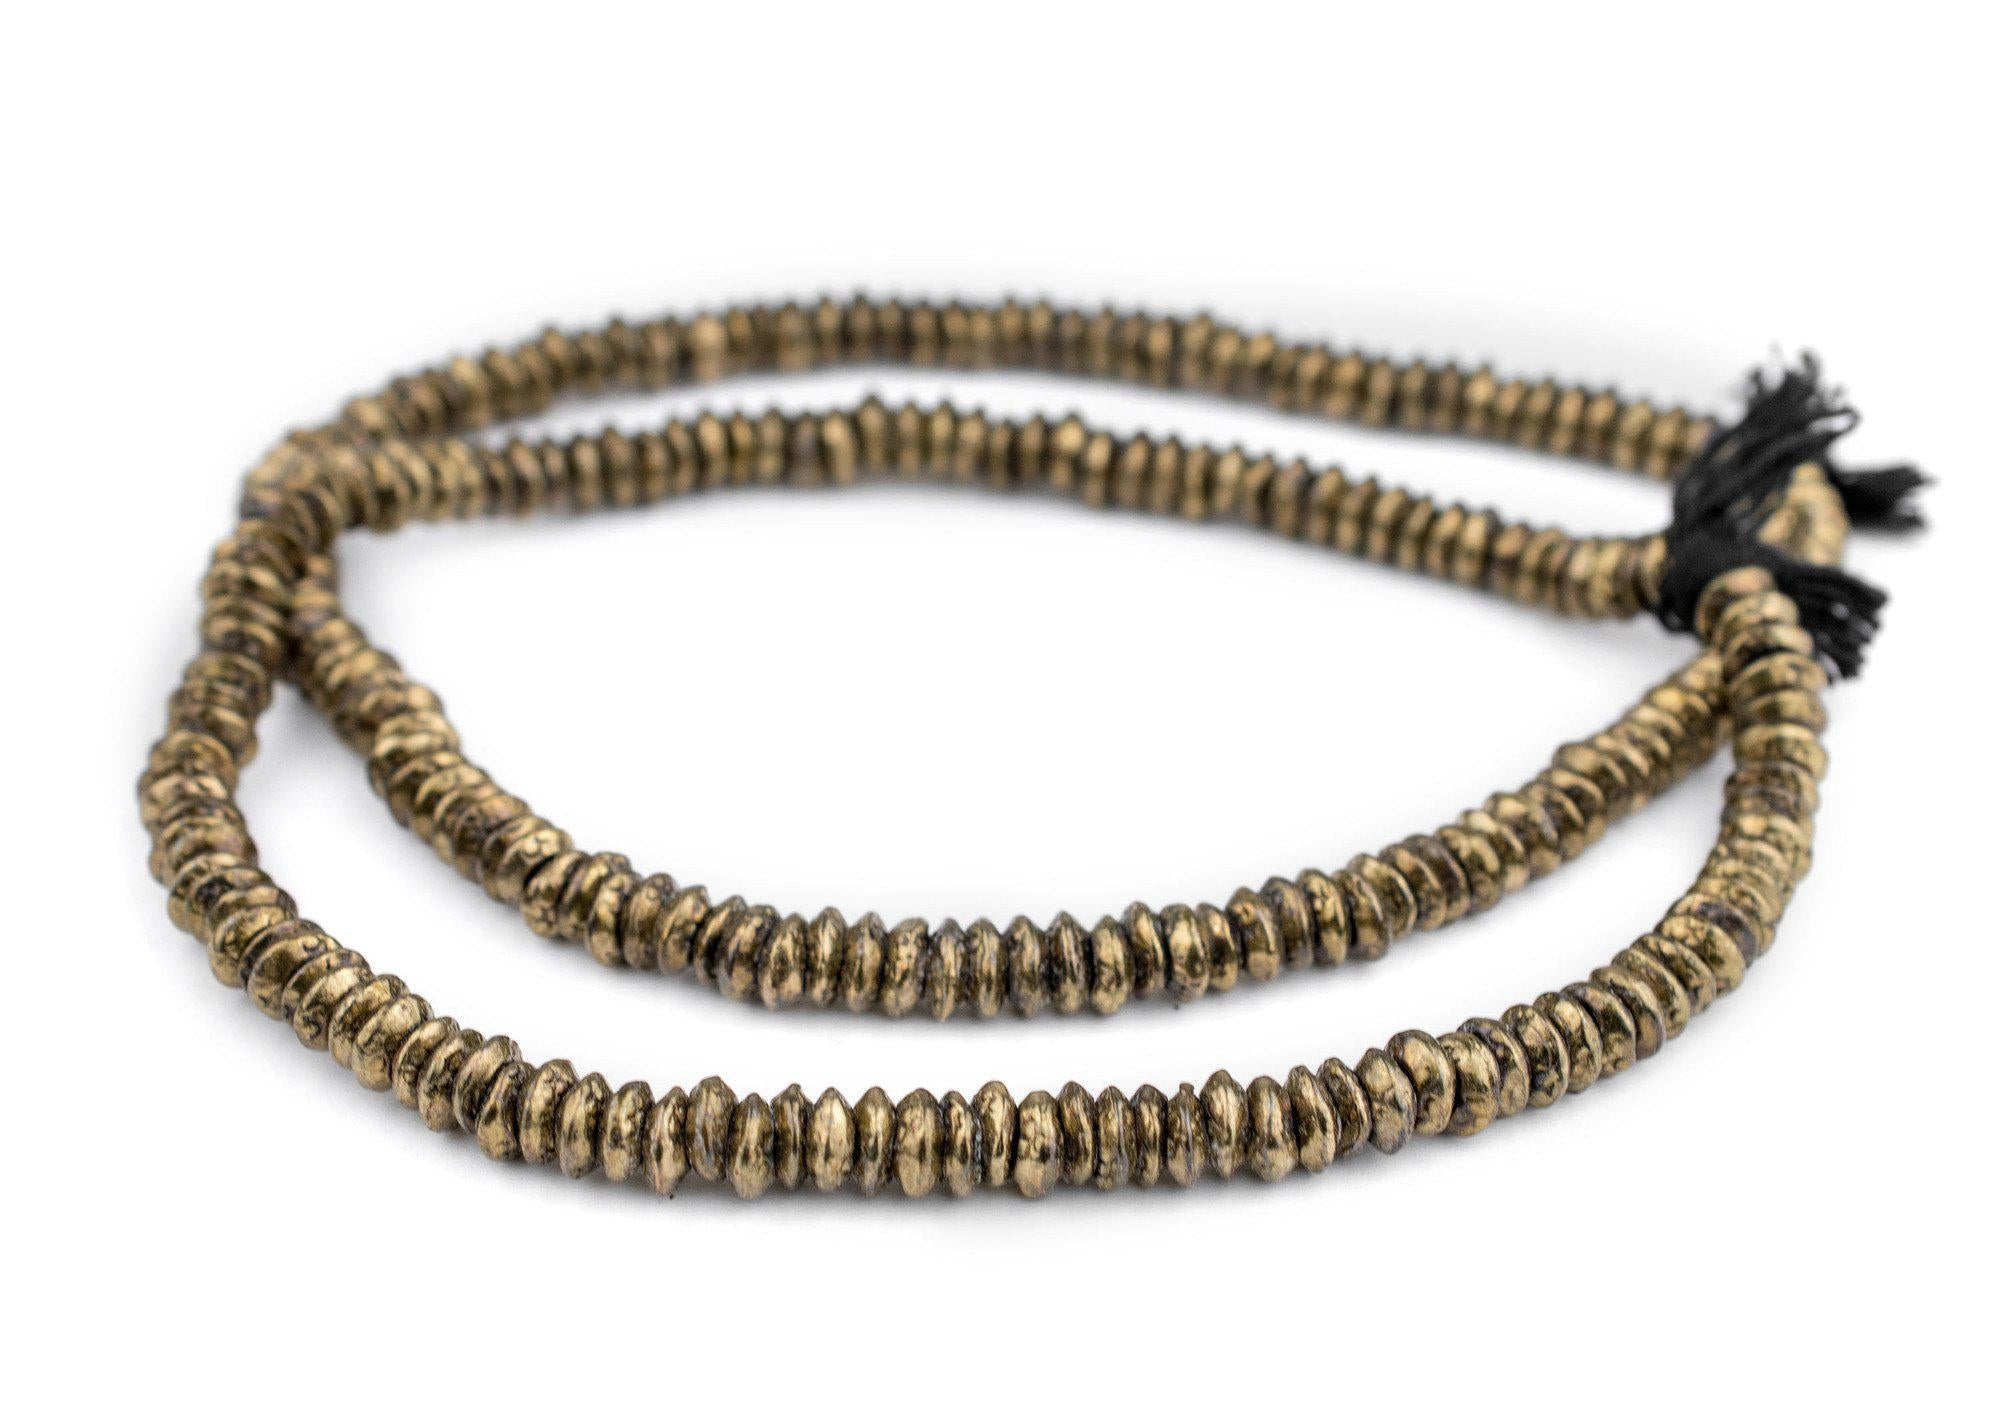 Brass Tribal Rings 9mm Ethiopia African Large Hole 16 Inch Strand Handmade